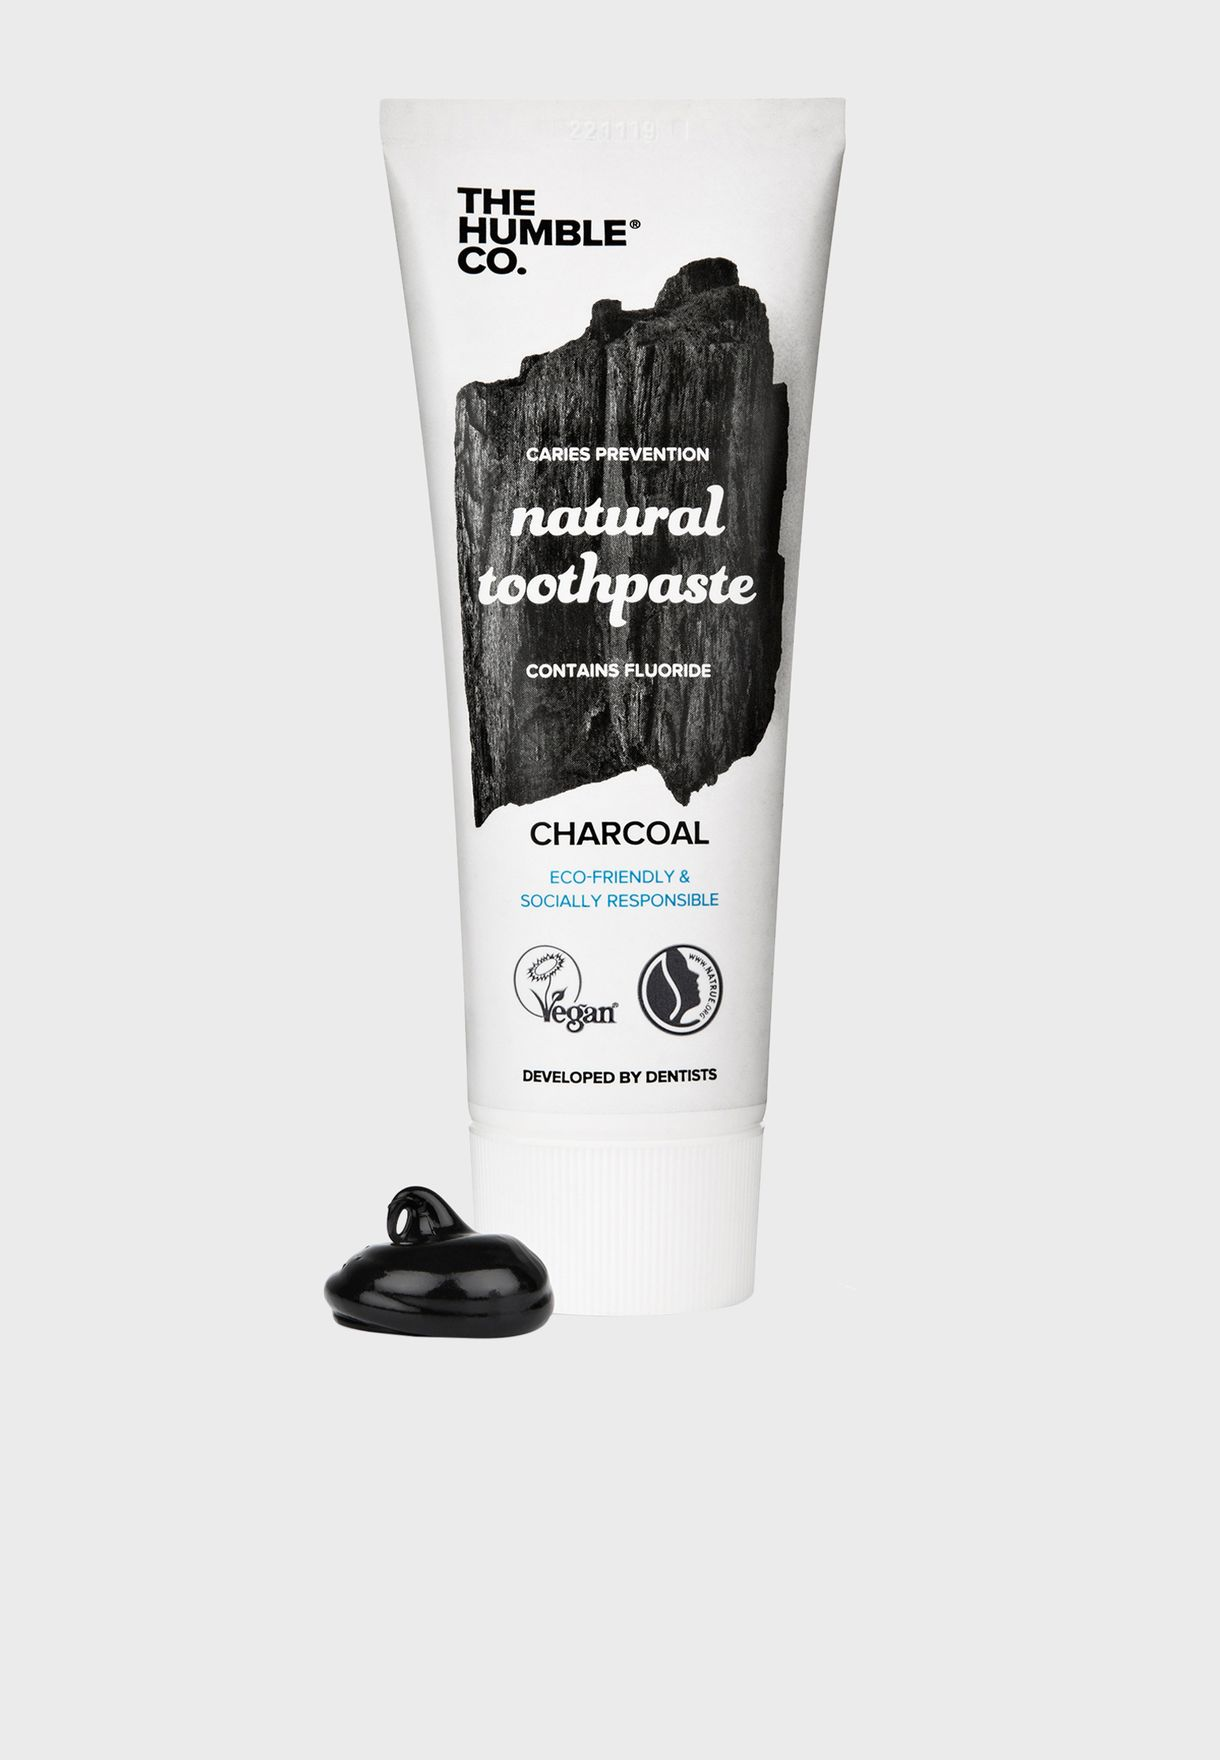 Natural Charcoal Toothpaste